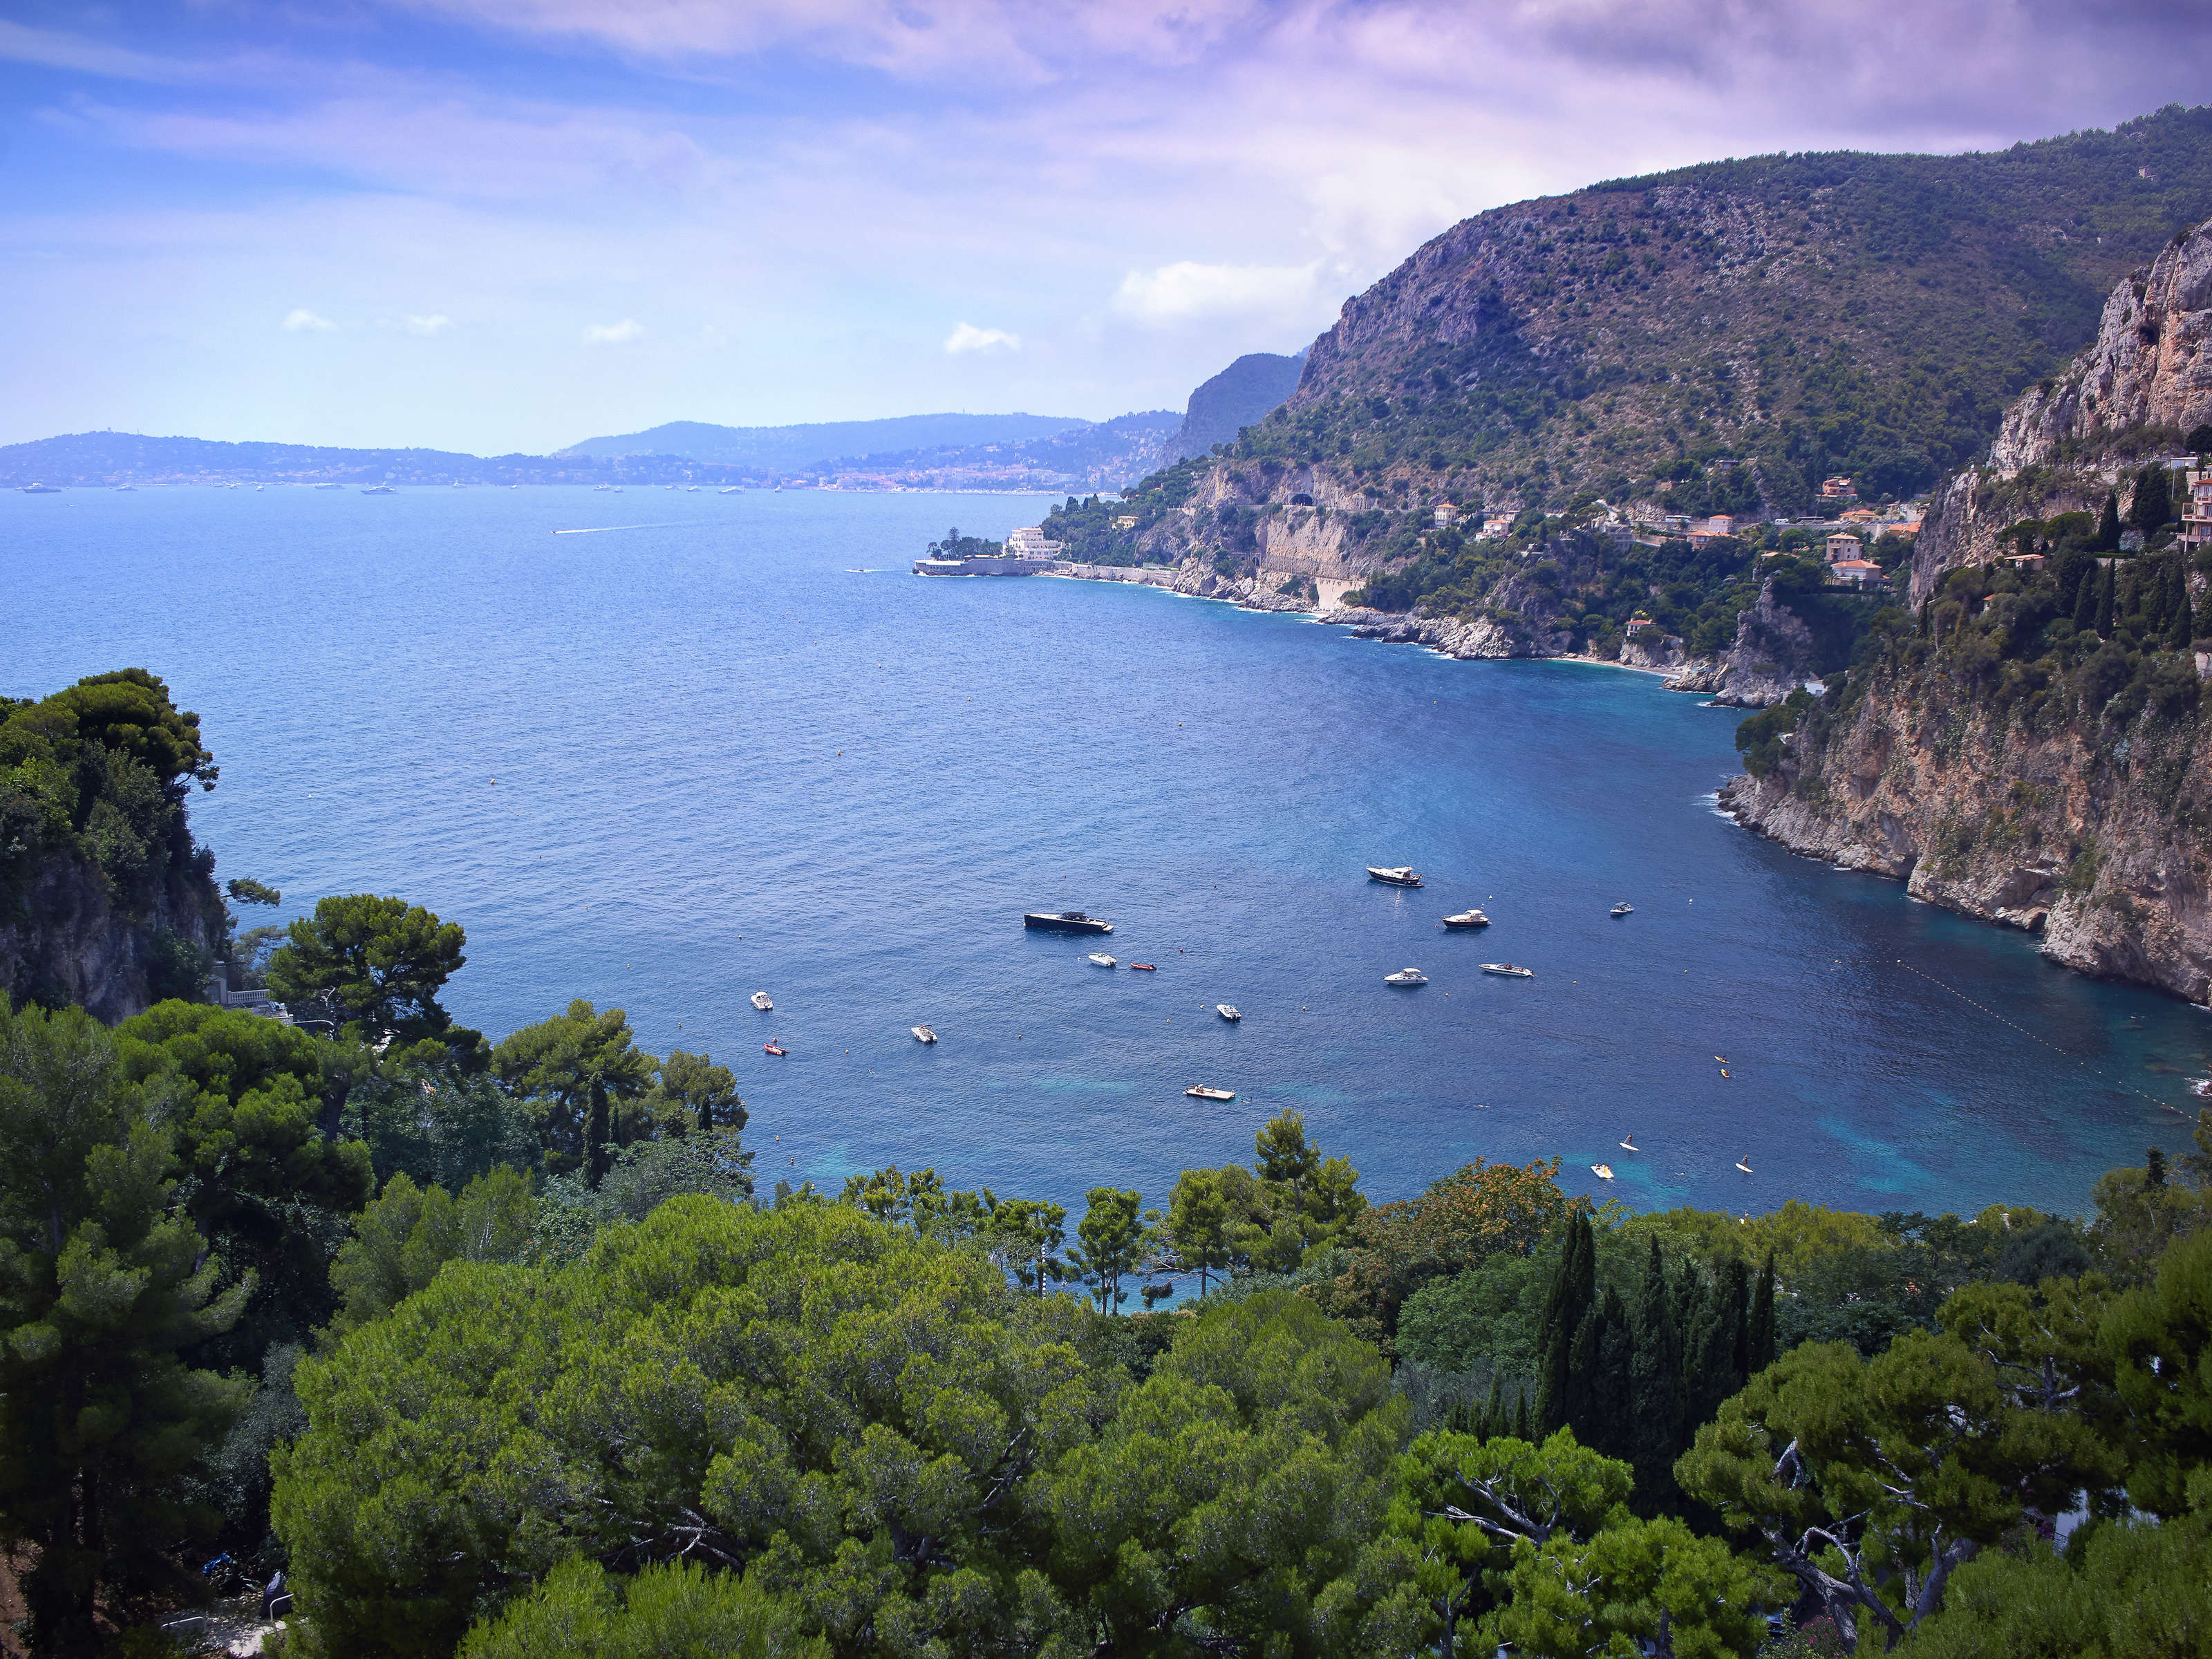 Single Family Home for Sale at Lovely property close to the beach with panoramic views to the sea Cap D'Ail, Provence-Alpes-Cote D'Azur 06320 France